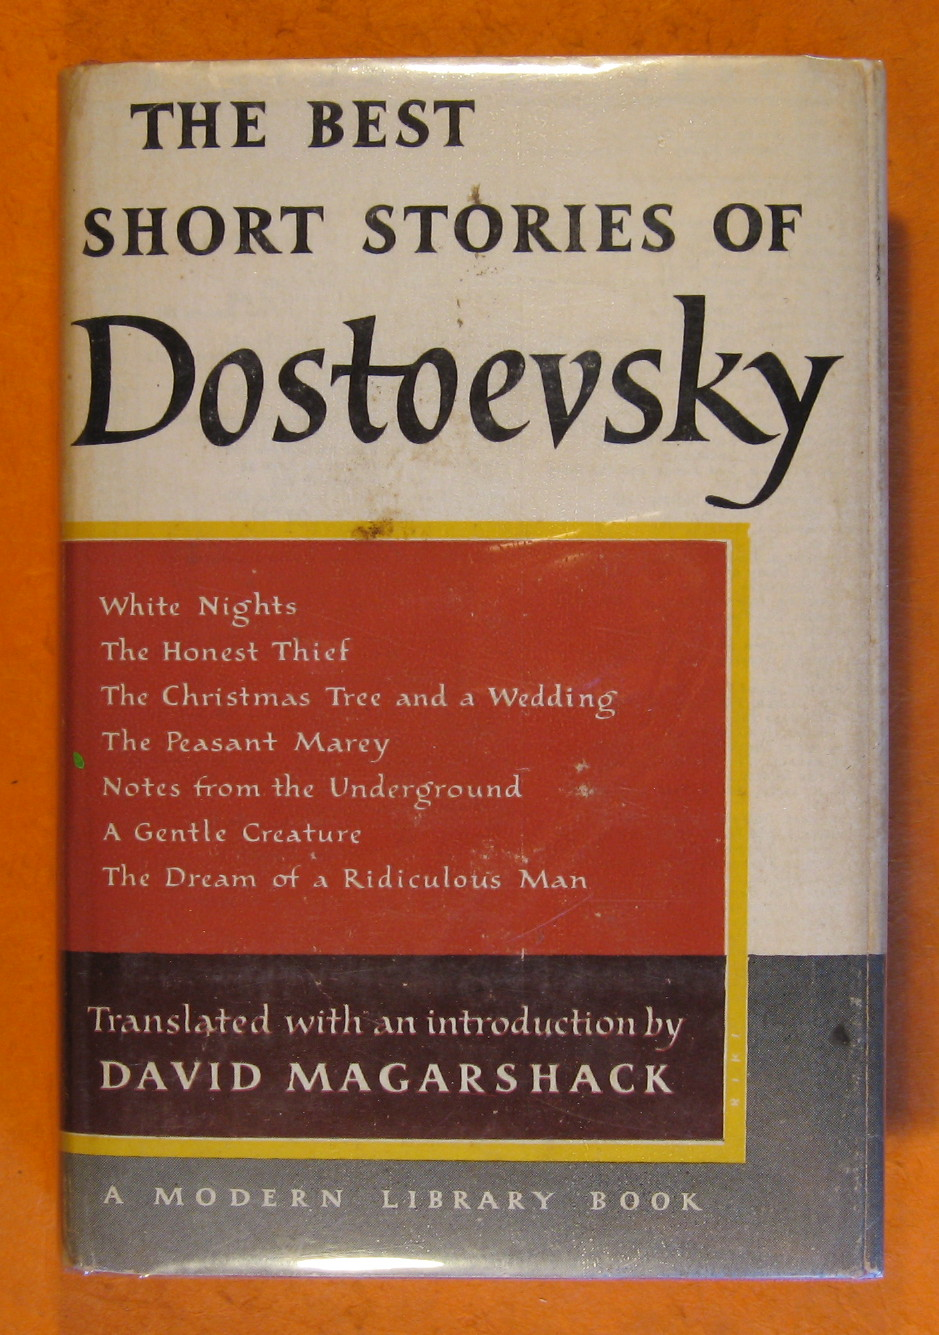 Best Short Stories of Dostoevsky, Dostoevsky, Fyodor